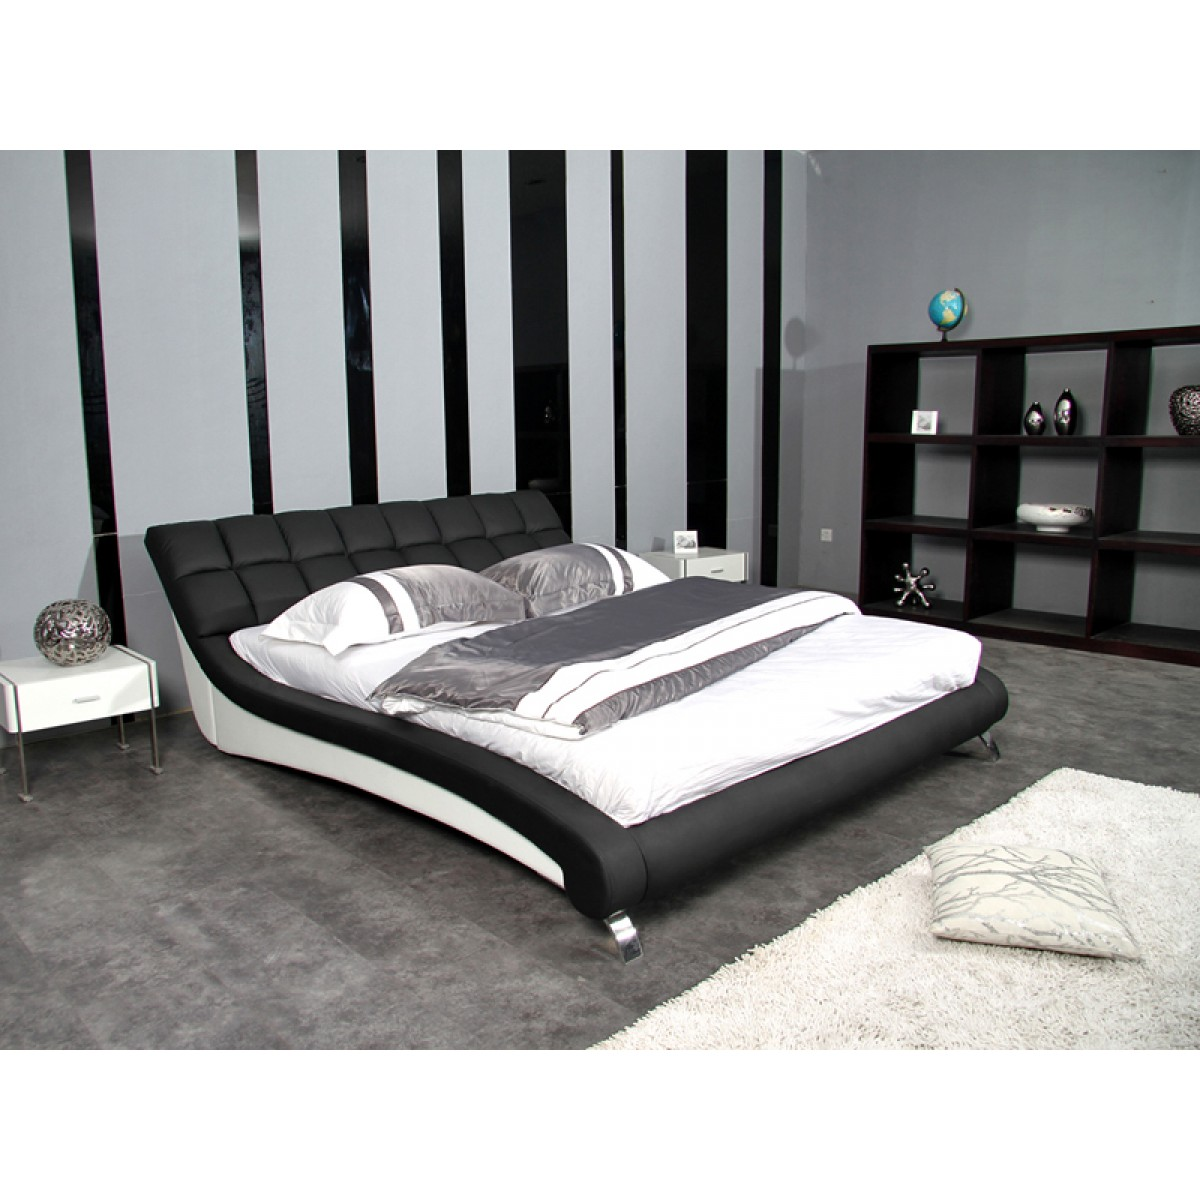 lit personnalisable malibu 140 160 180 cuir ou simili sommier optio. Black Bedroom Furniture Sets. Home Design Ideas